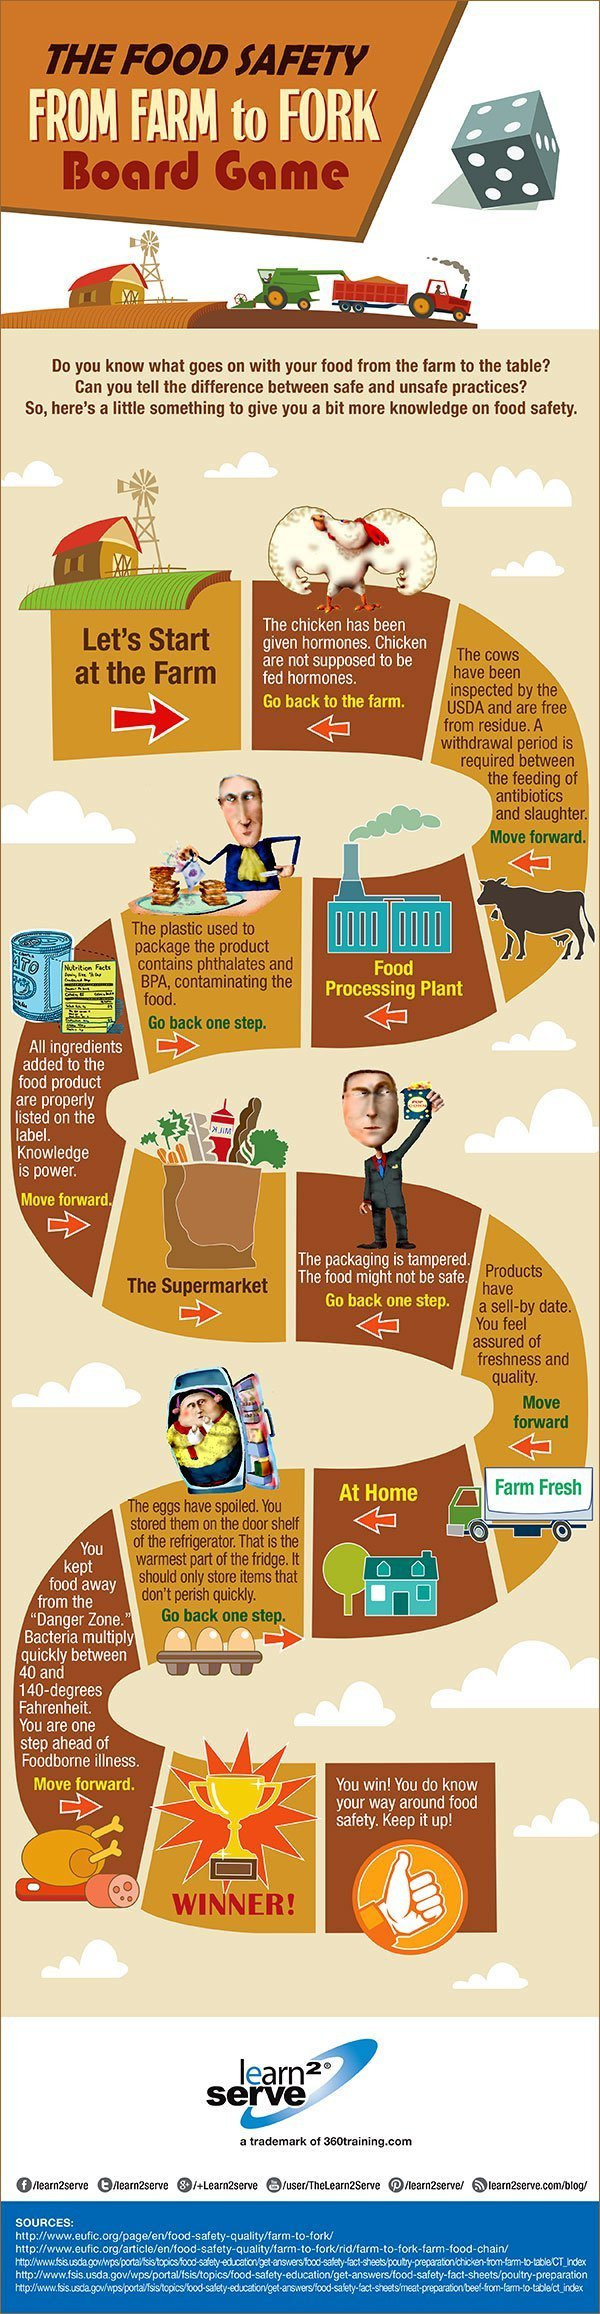 Food Safety From Farm To Fork Infographic Learn2serve Blog